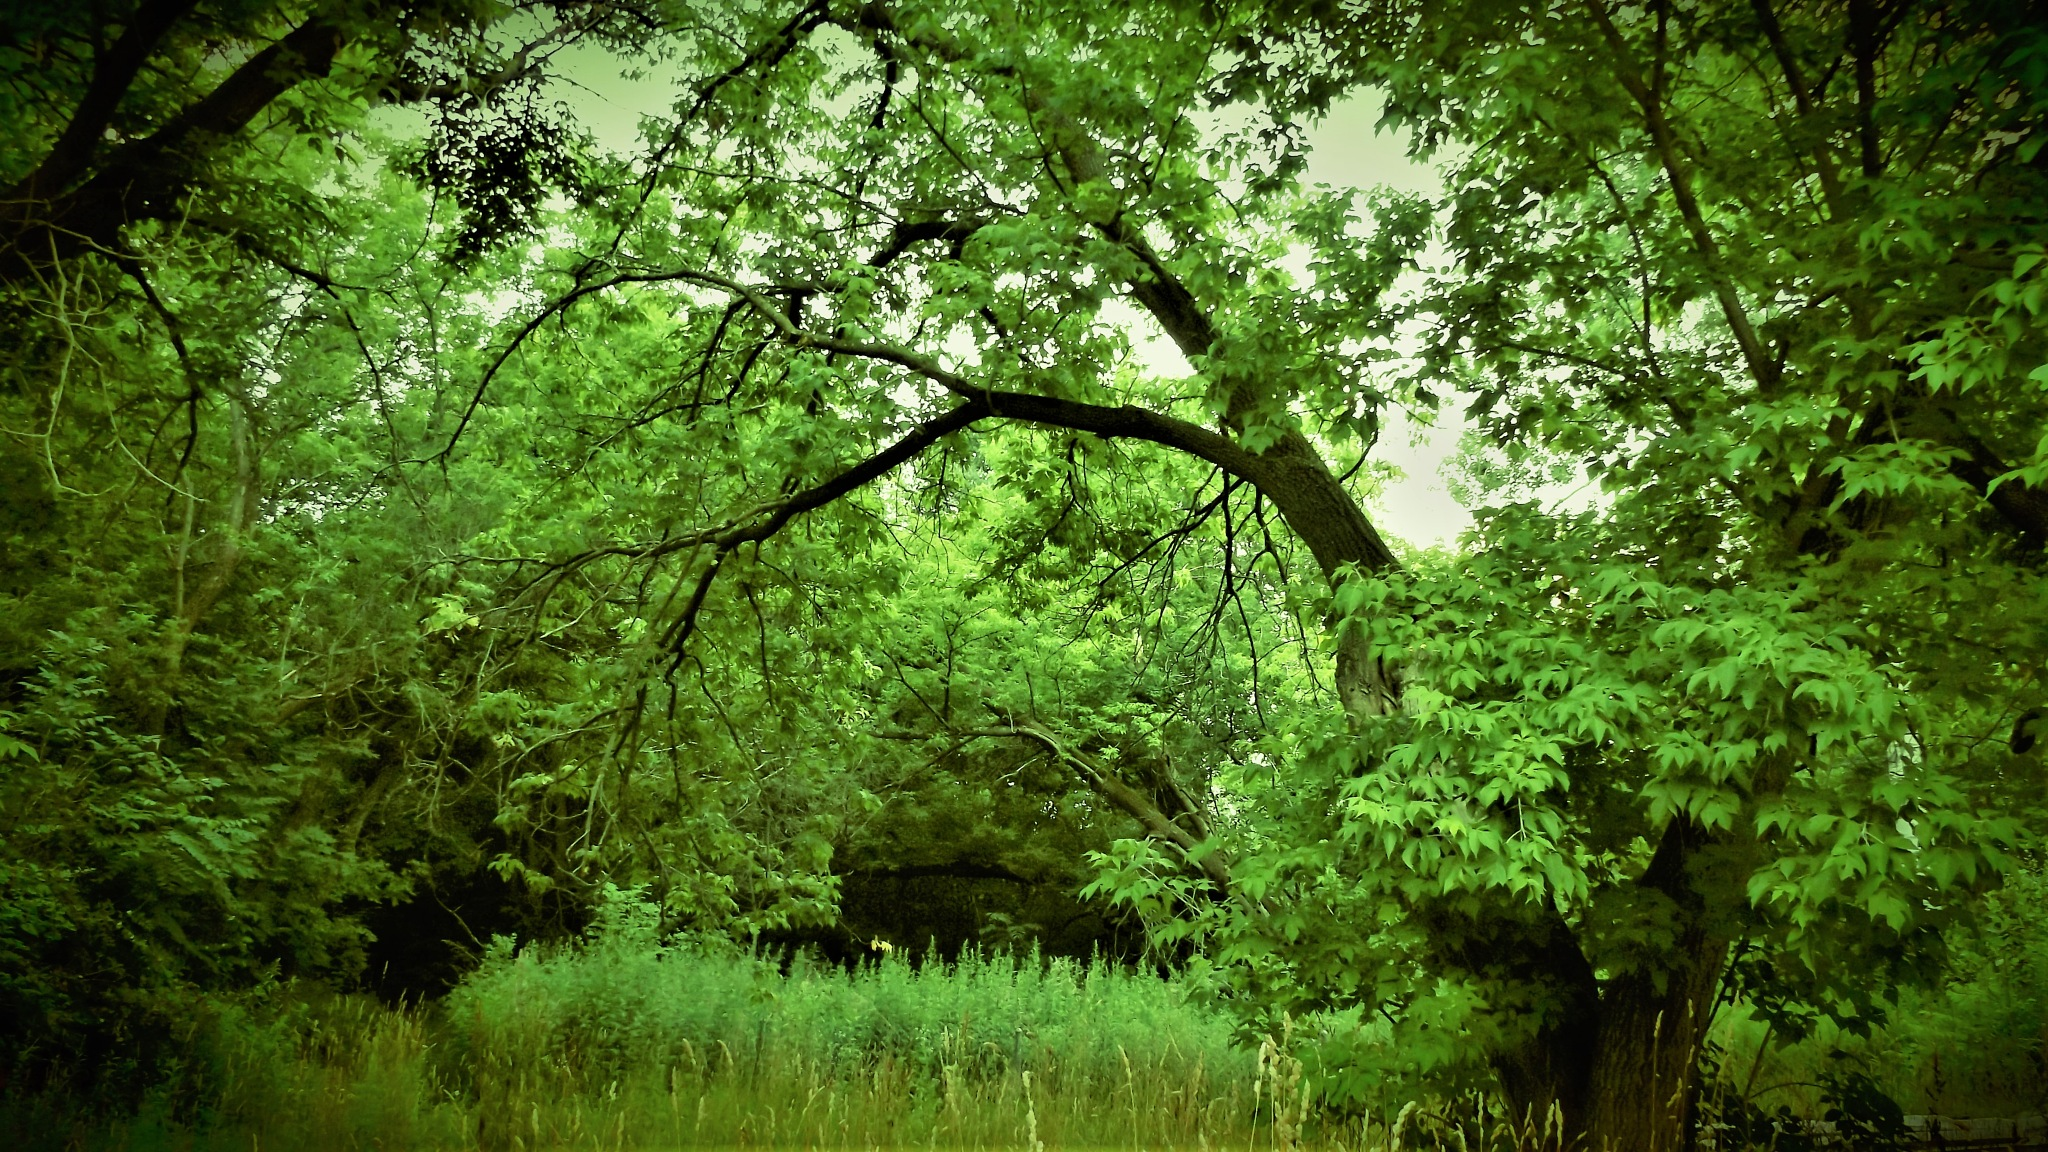 GREEN ON THE TREES IN THE WOODS by Dawn Hoffmeister